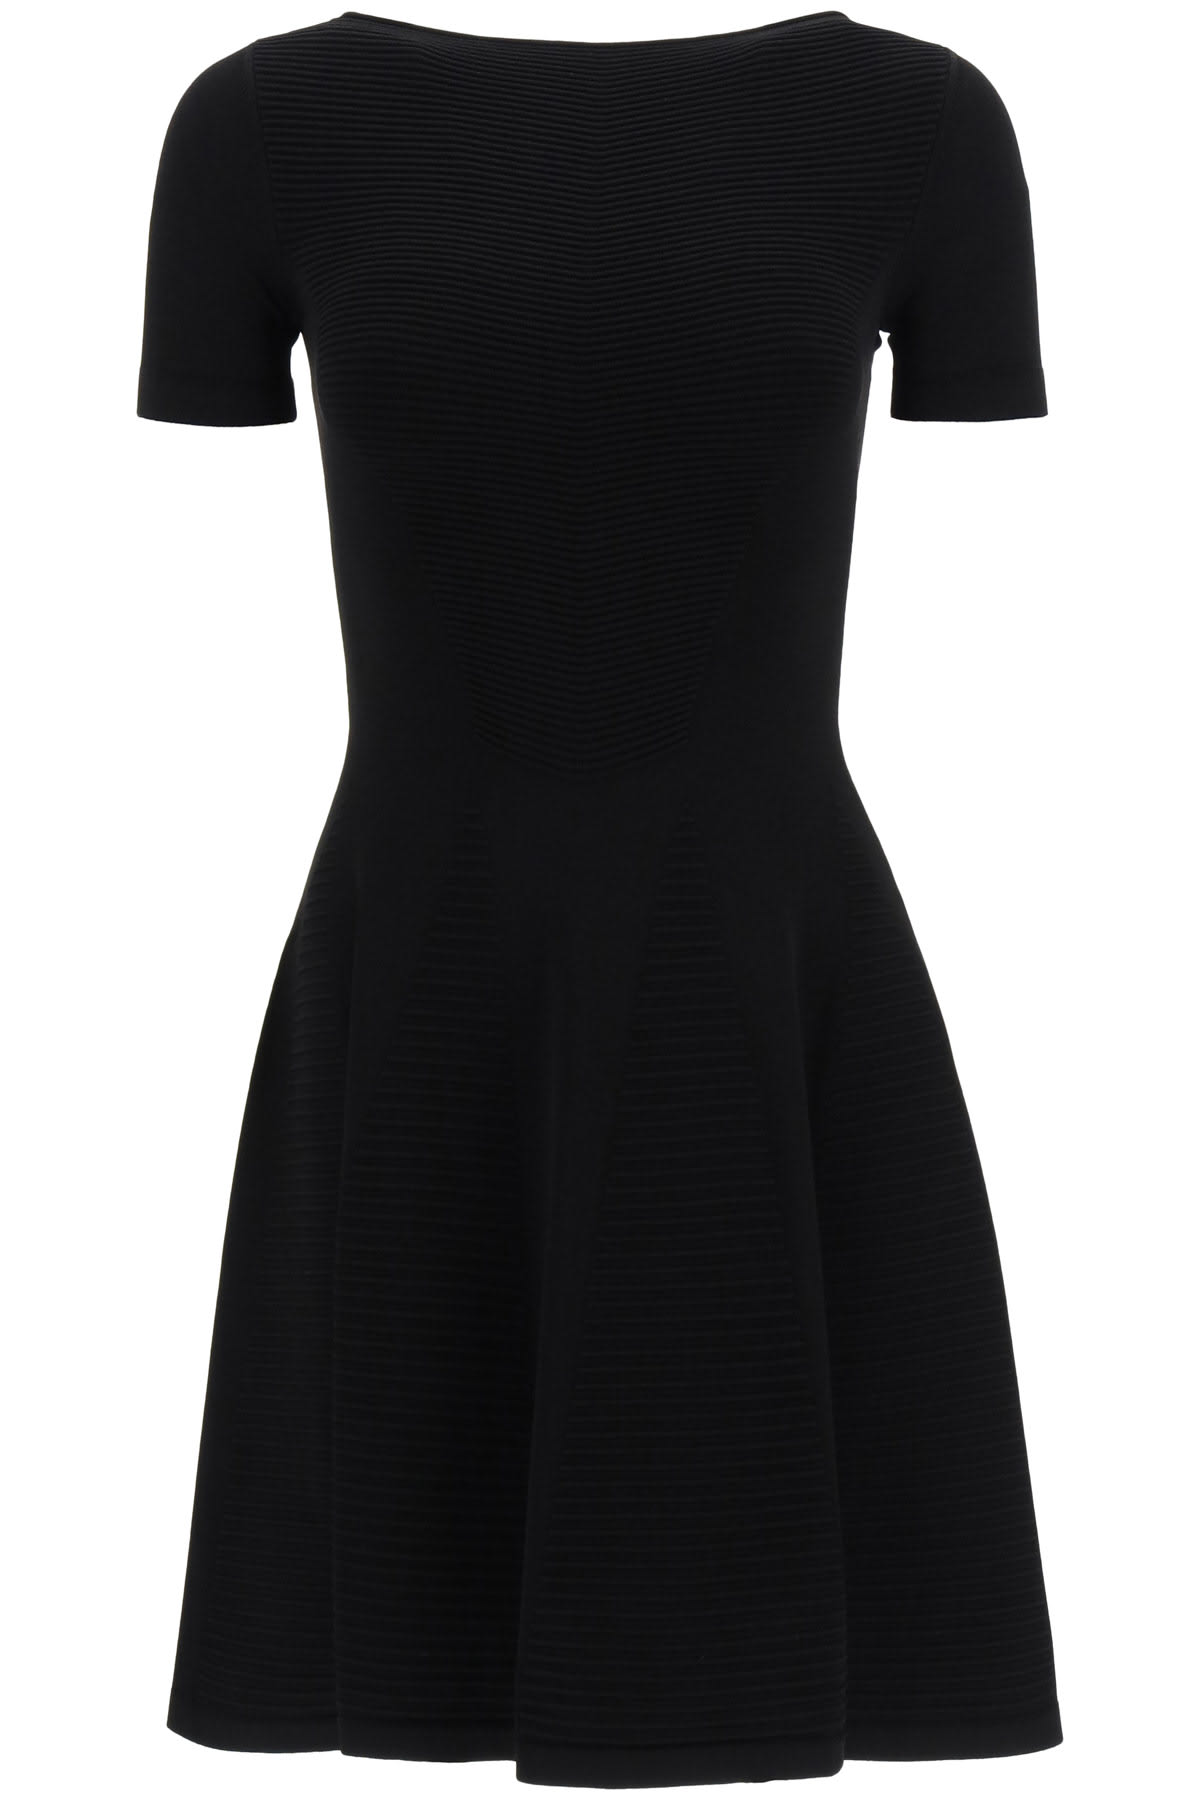 Buy Dsquared2 Knit Mini Dress With Ribbed Details online, shop Dsquared2 with free shipping